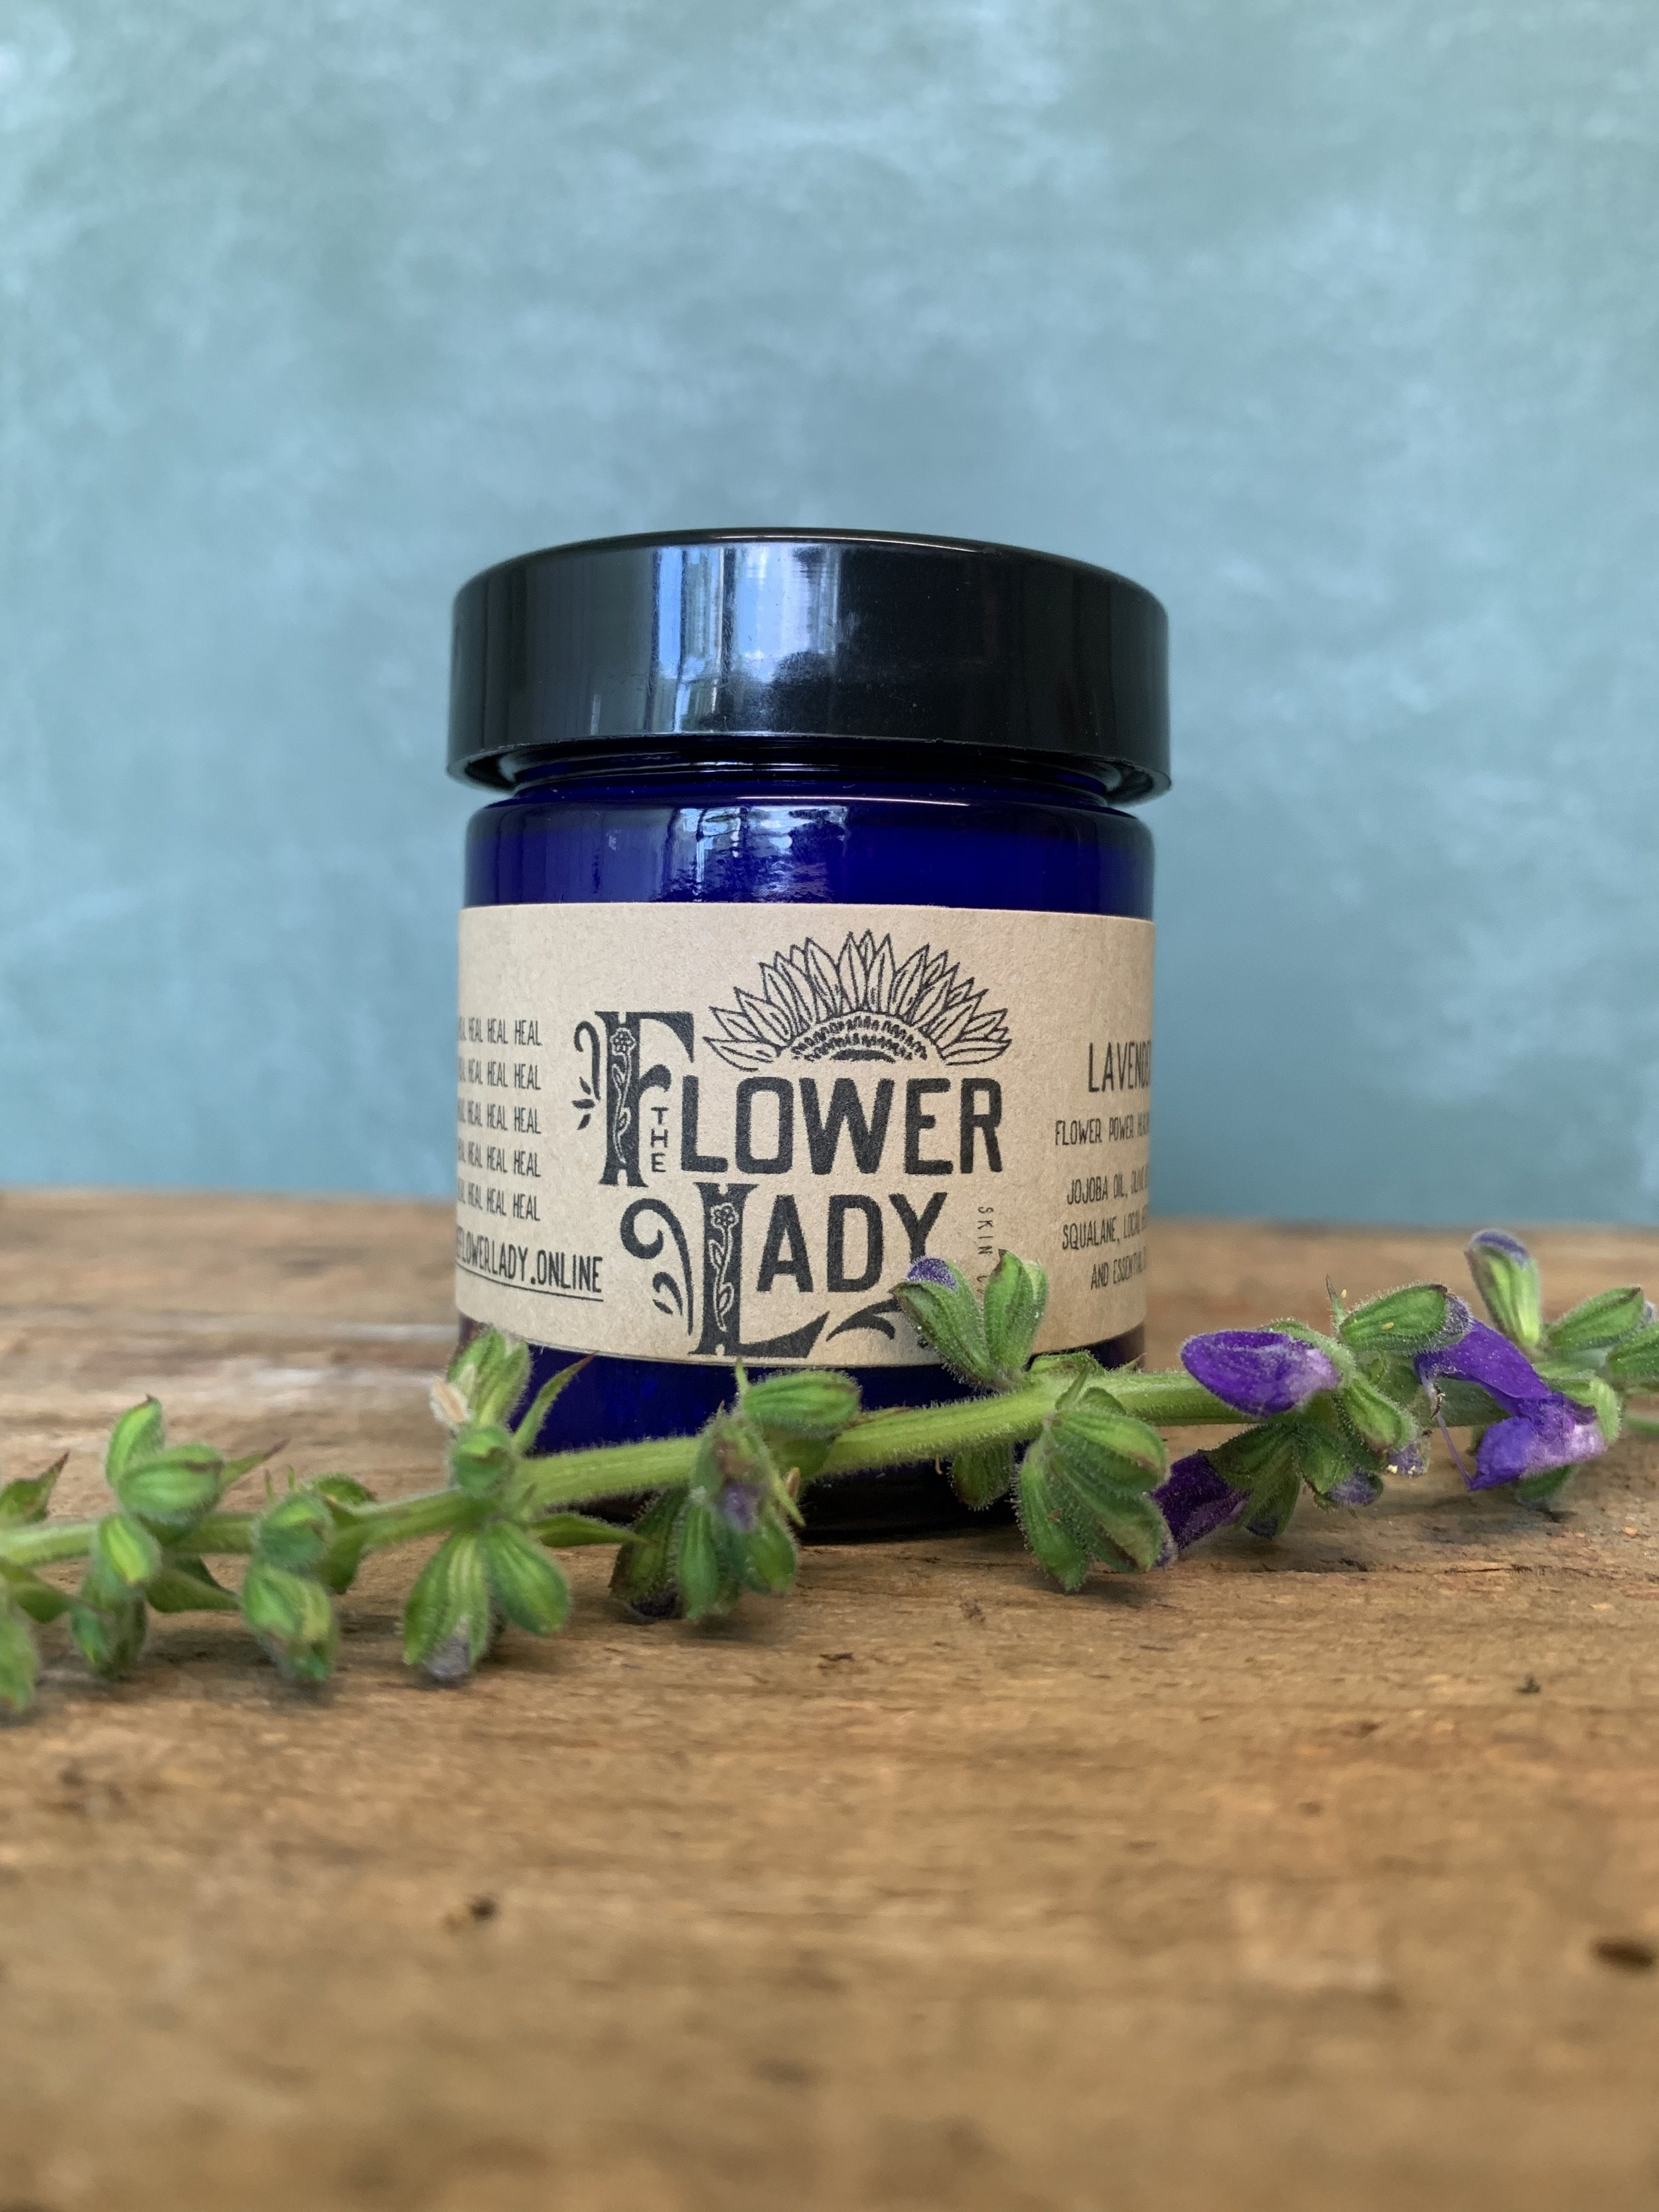 Flower Power - Natural, simple, non-toxic healingsalves for troubled skin.